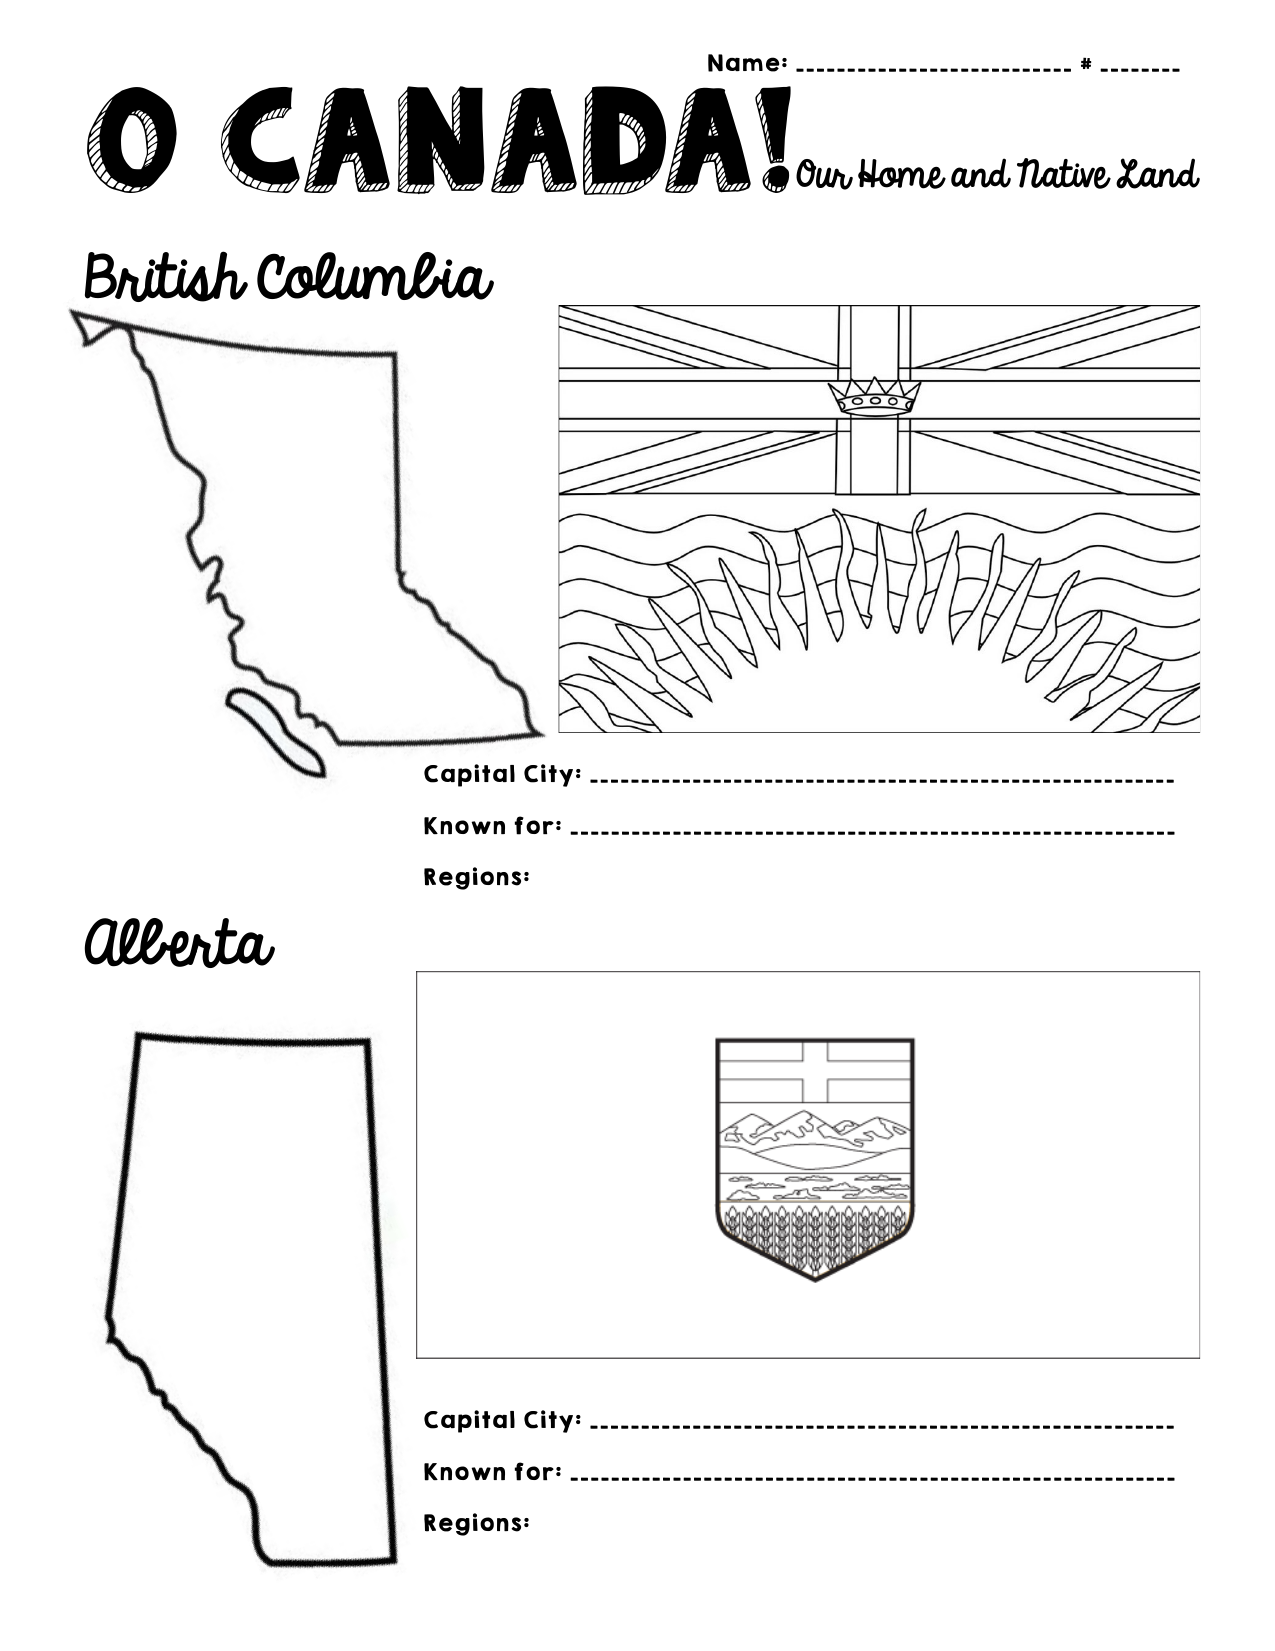 O Canada Provinces And Territories Resource Preview